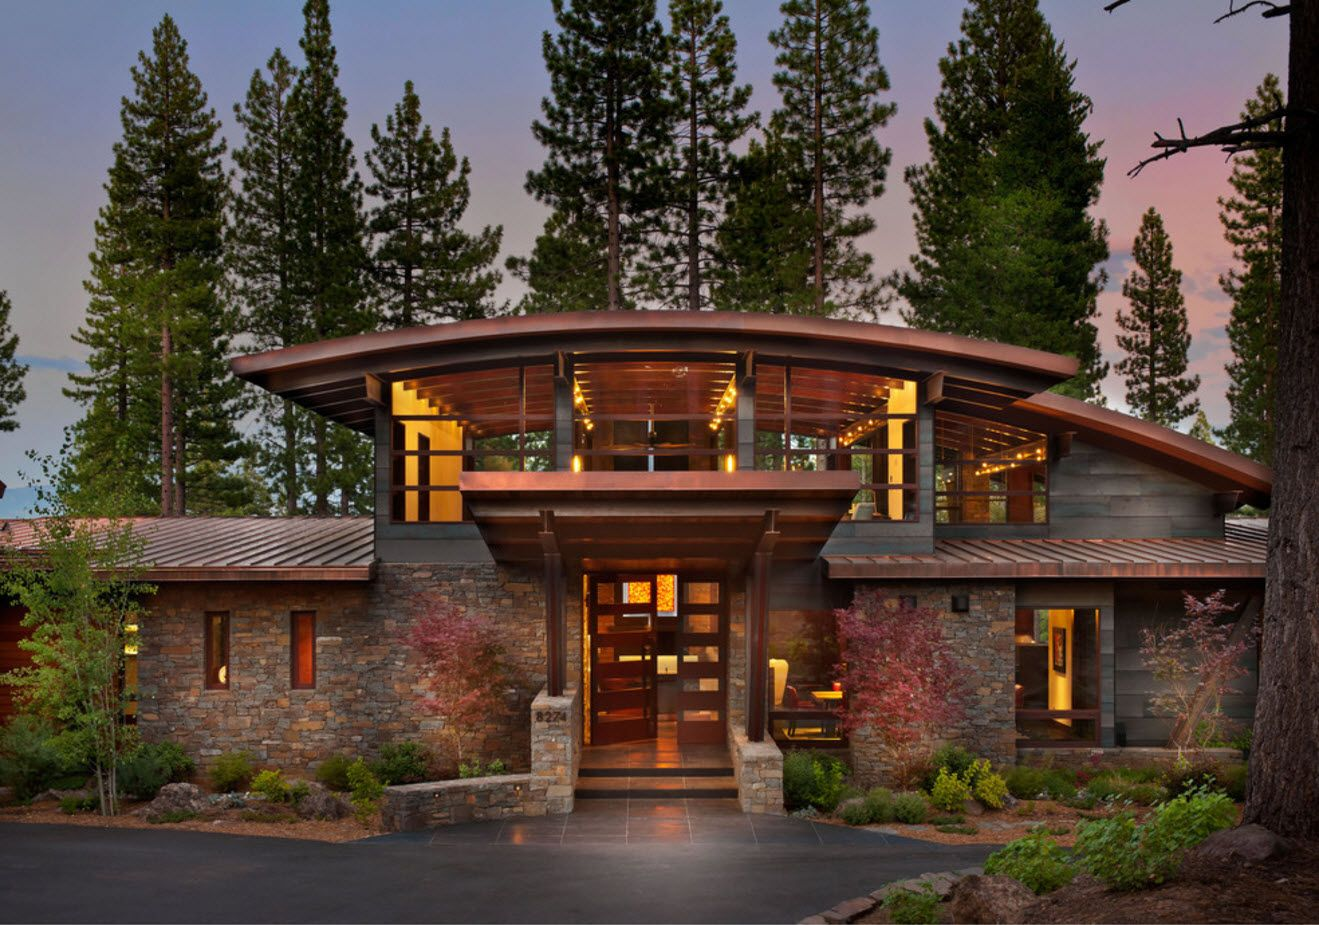 100+ Private House Roofs Beautiful Design Ideas. Vaulted top of the gorgeous combined forrest house